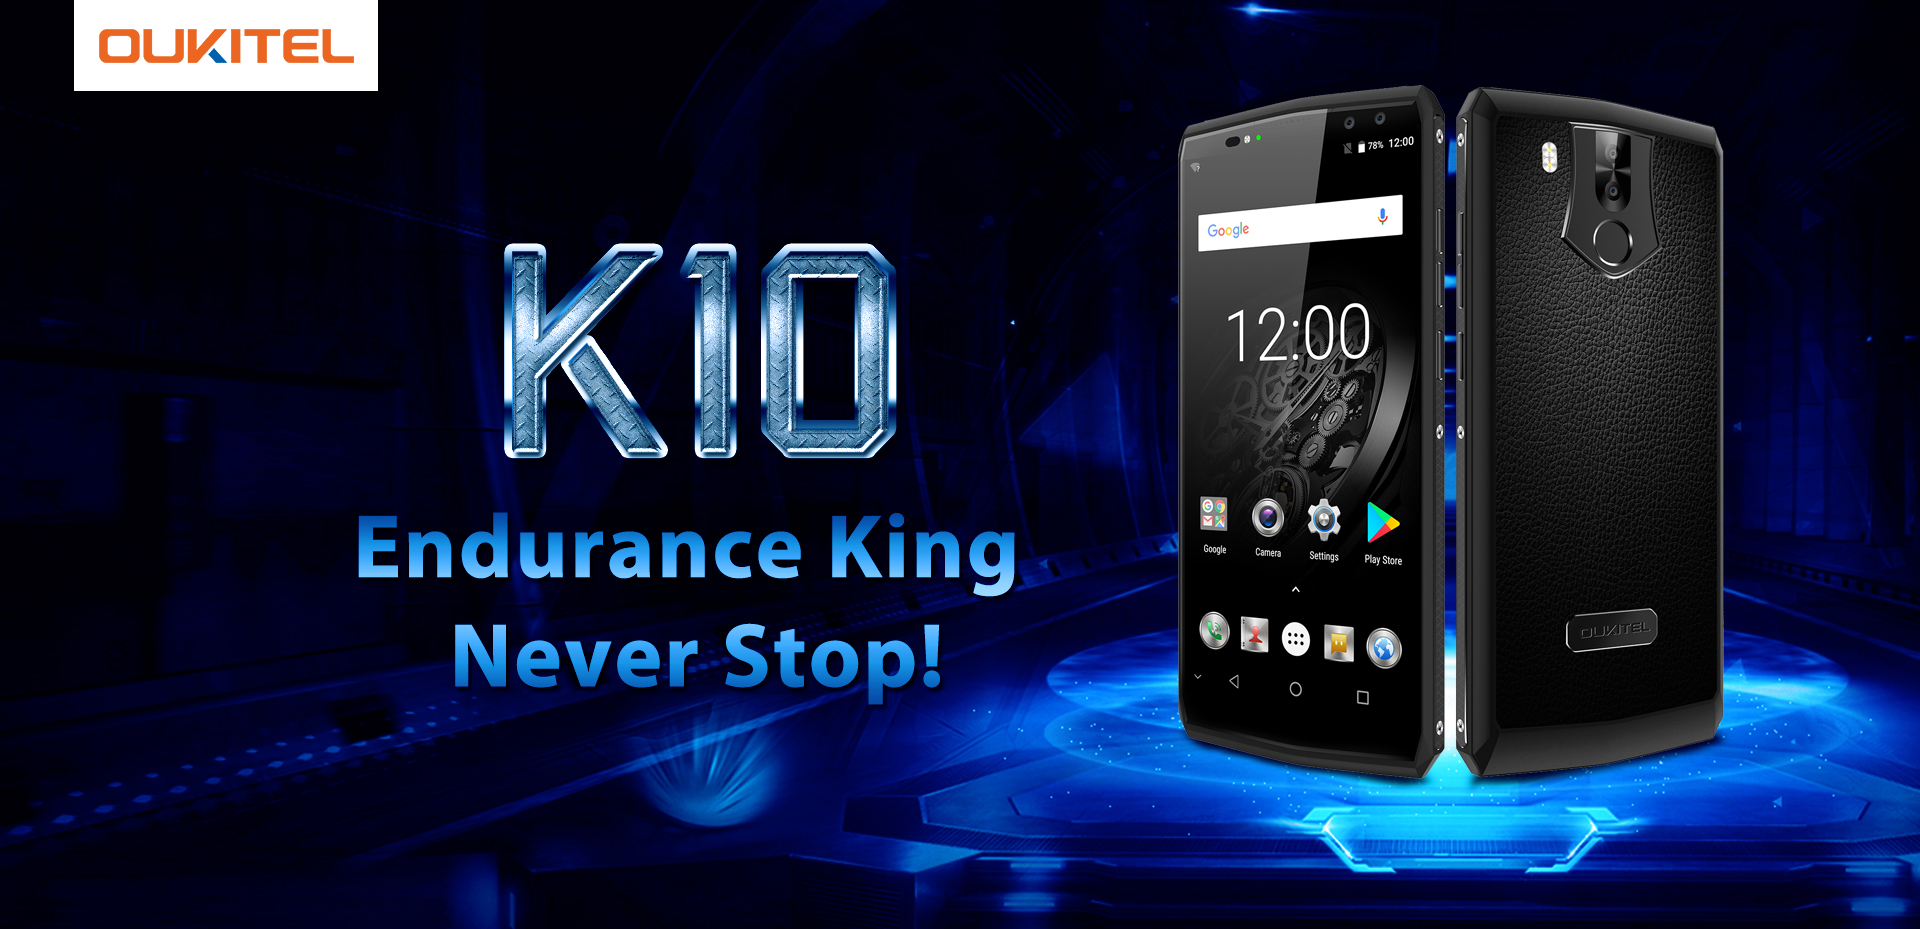 Ten main advantages of the smartphone OUKITEL K10